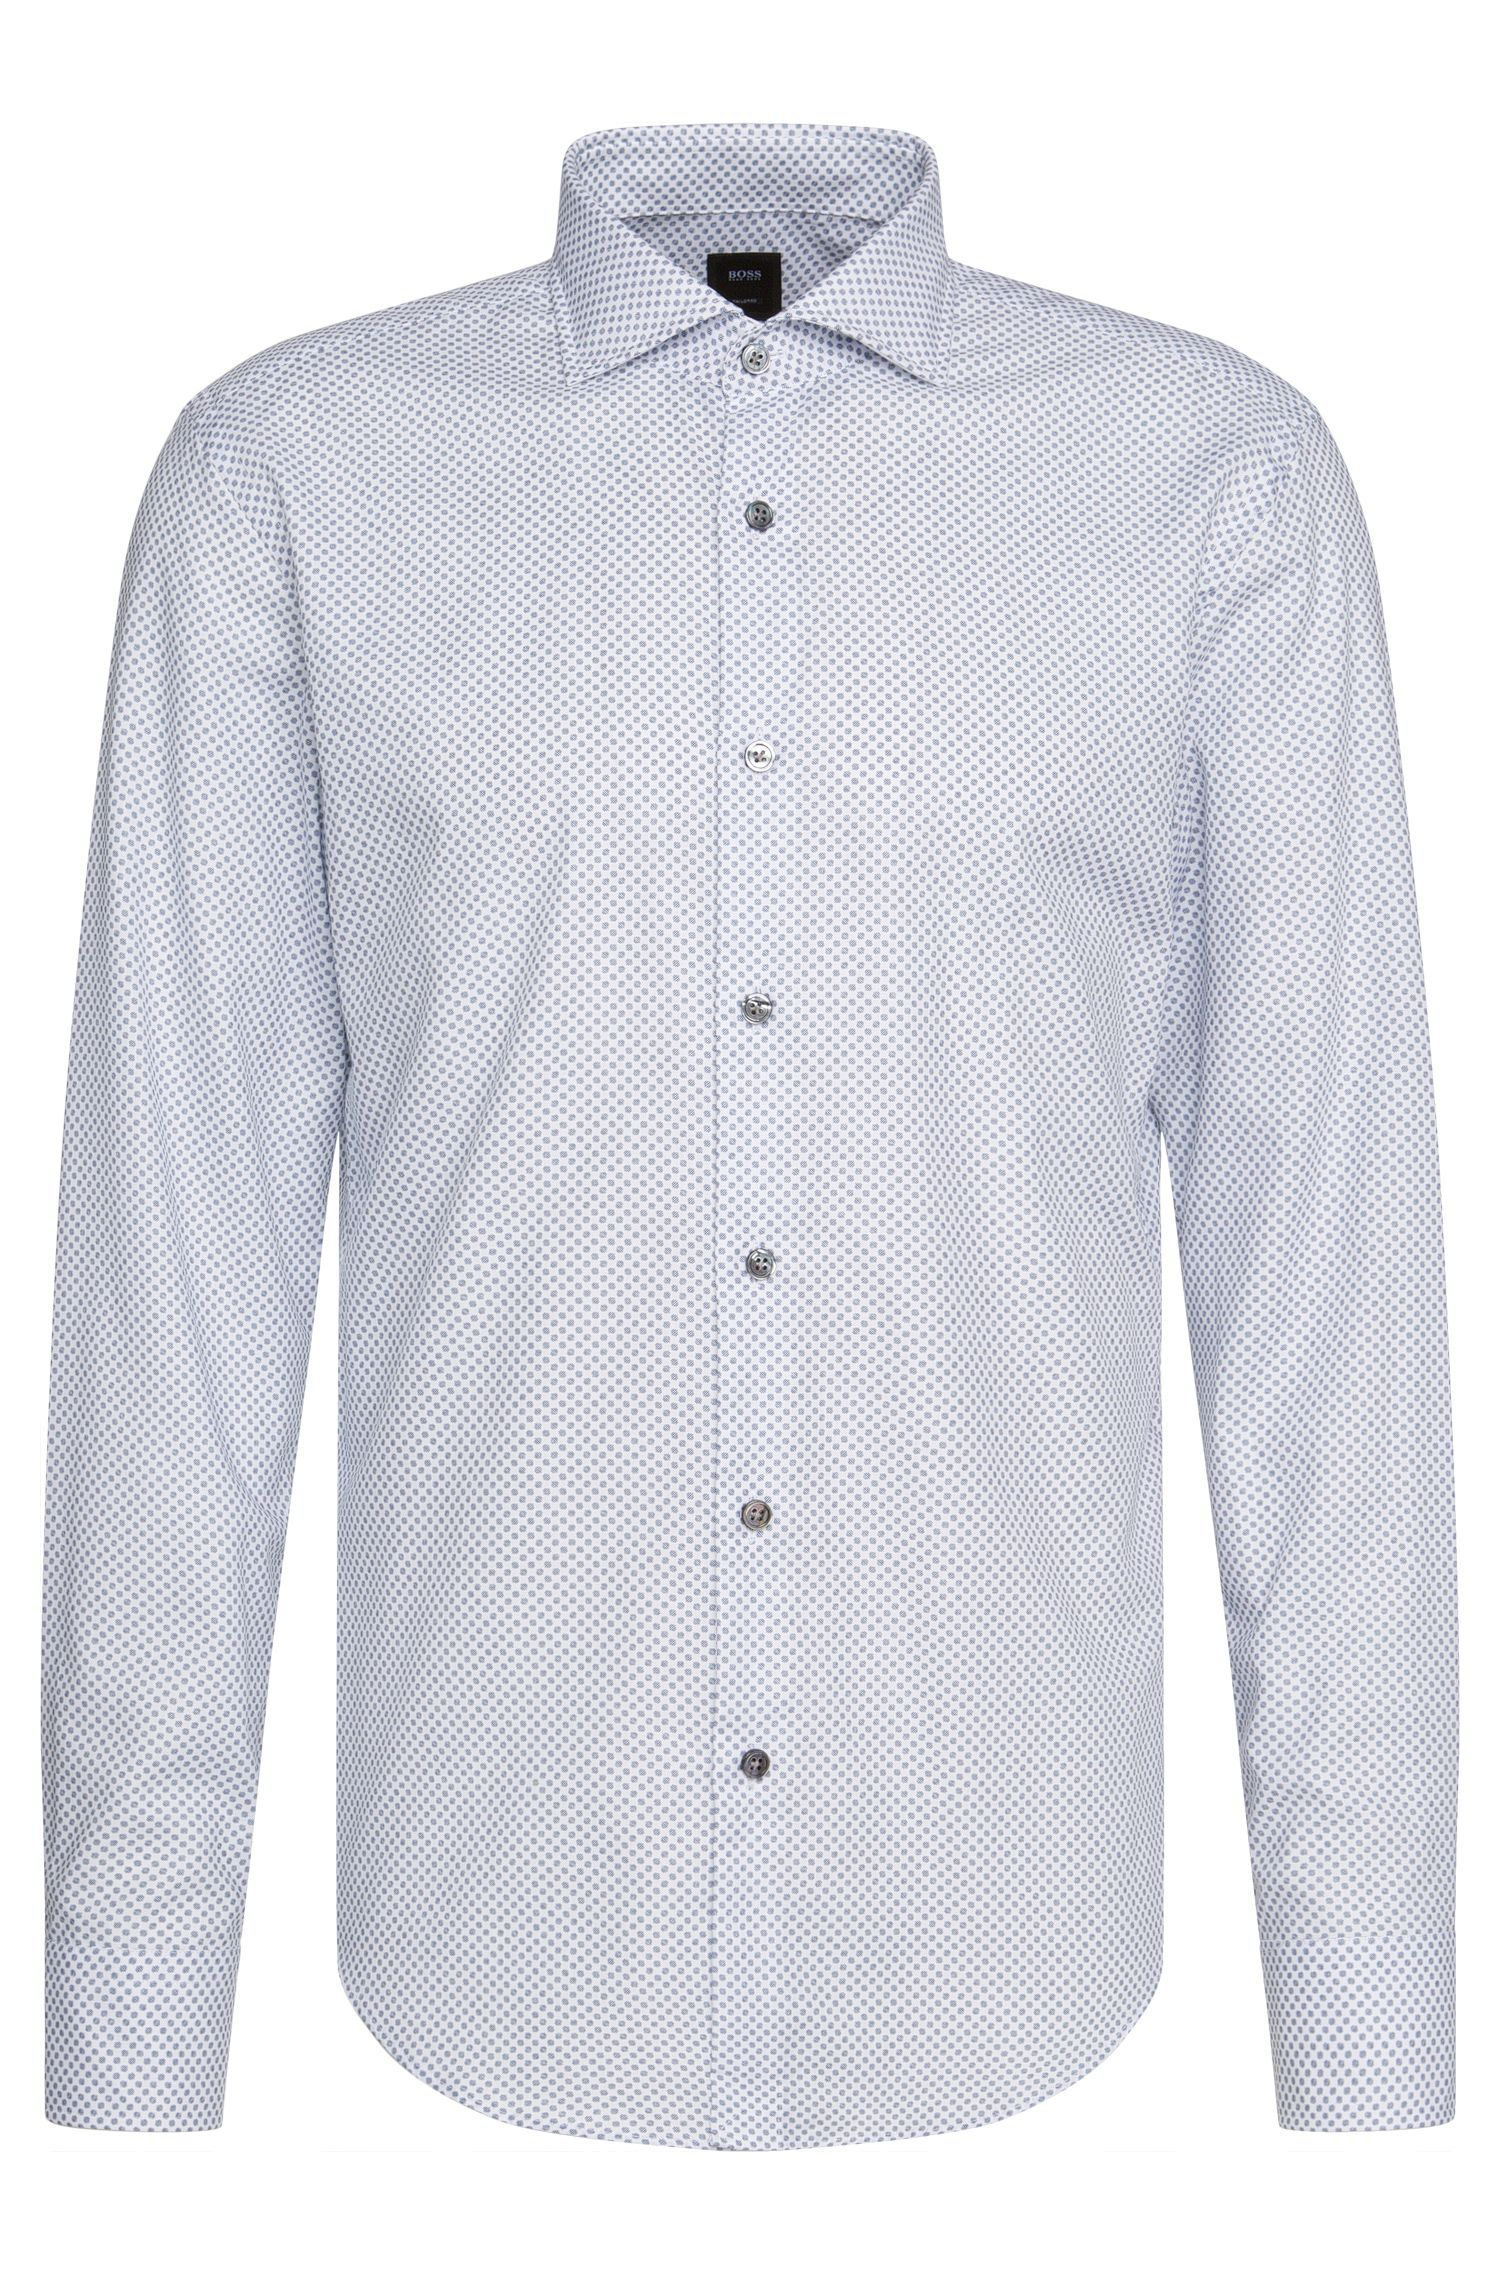 Slim-fit Tailored shirt in cotton in a polka dot pattern: 'T-Randolph_38F'